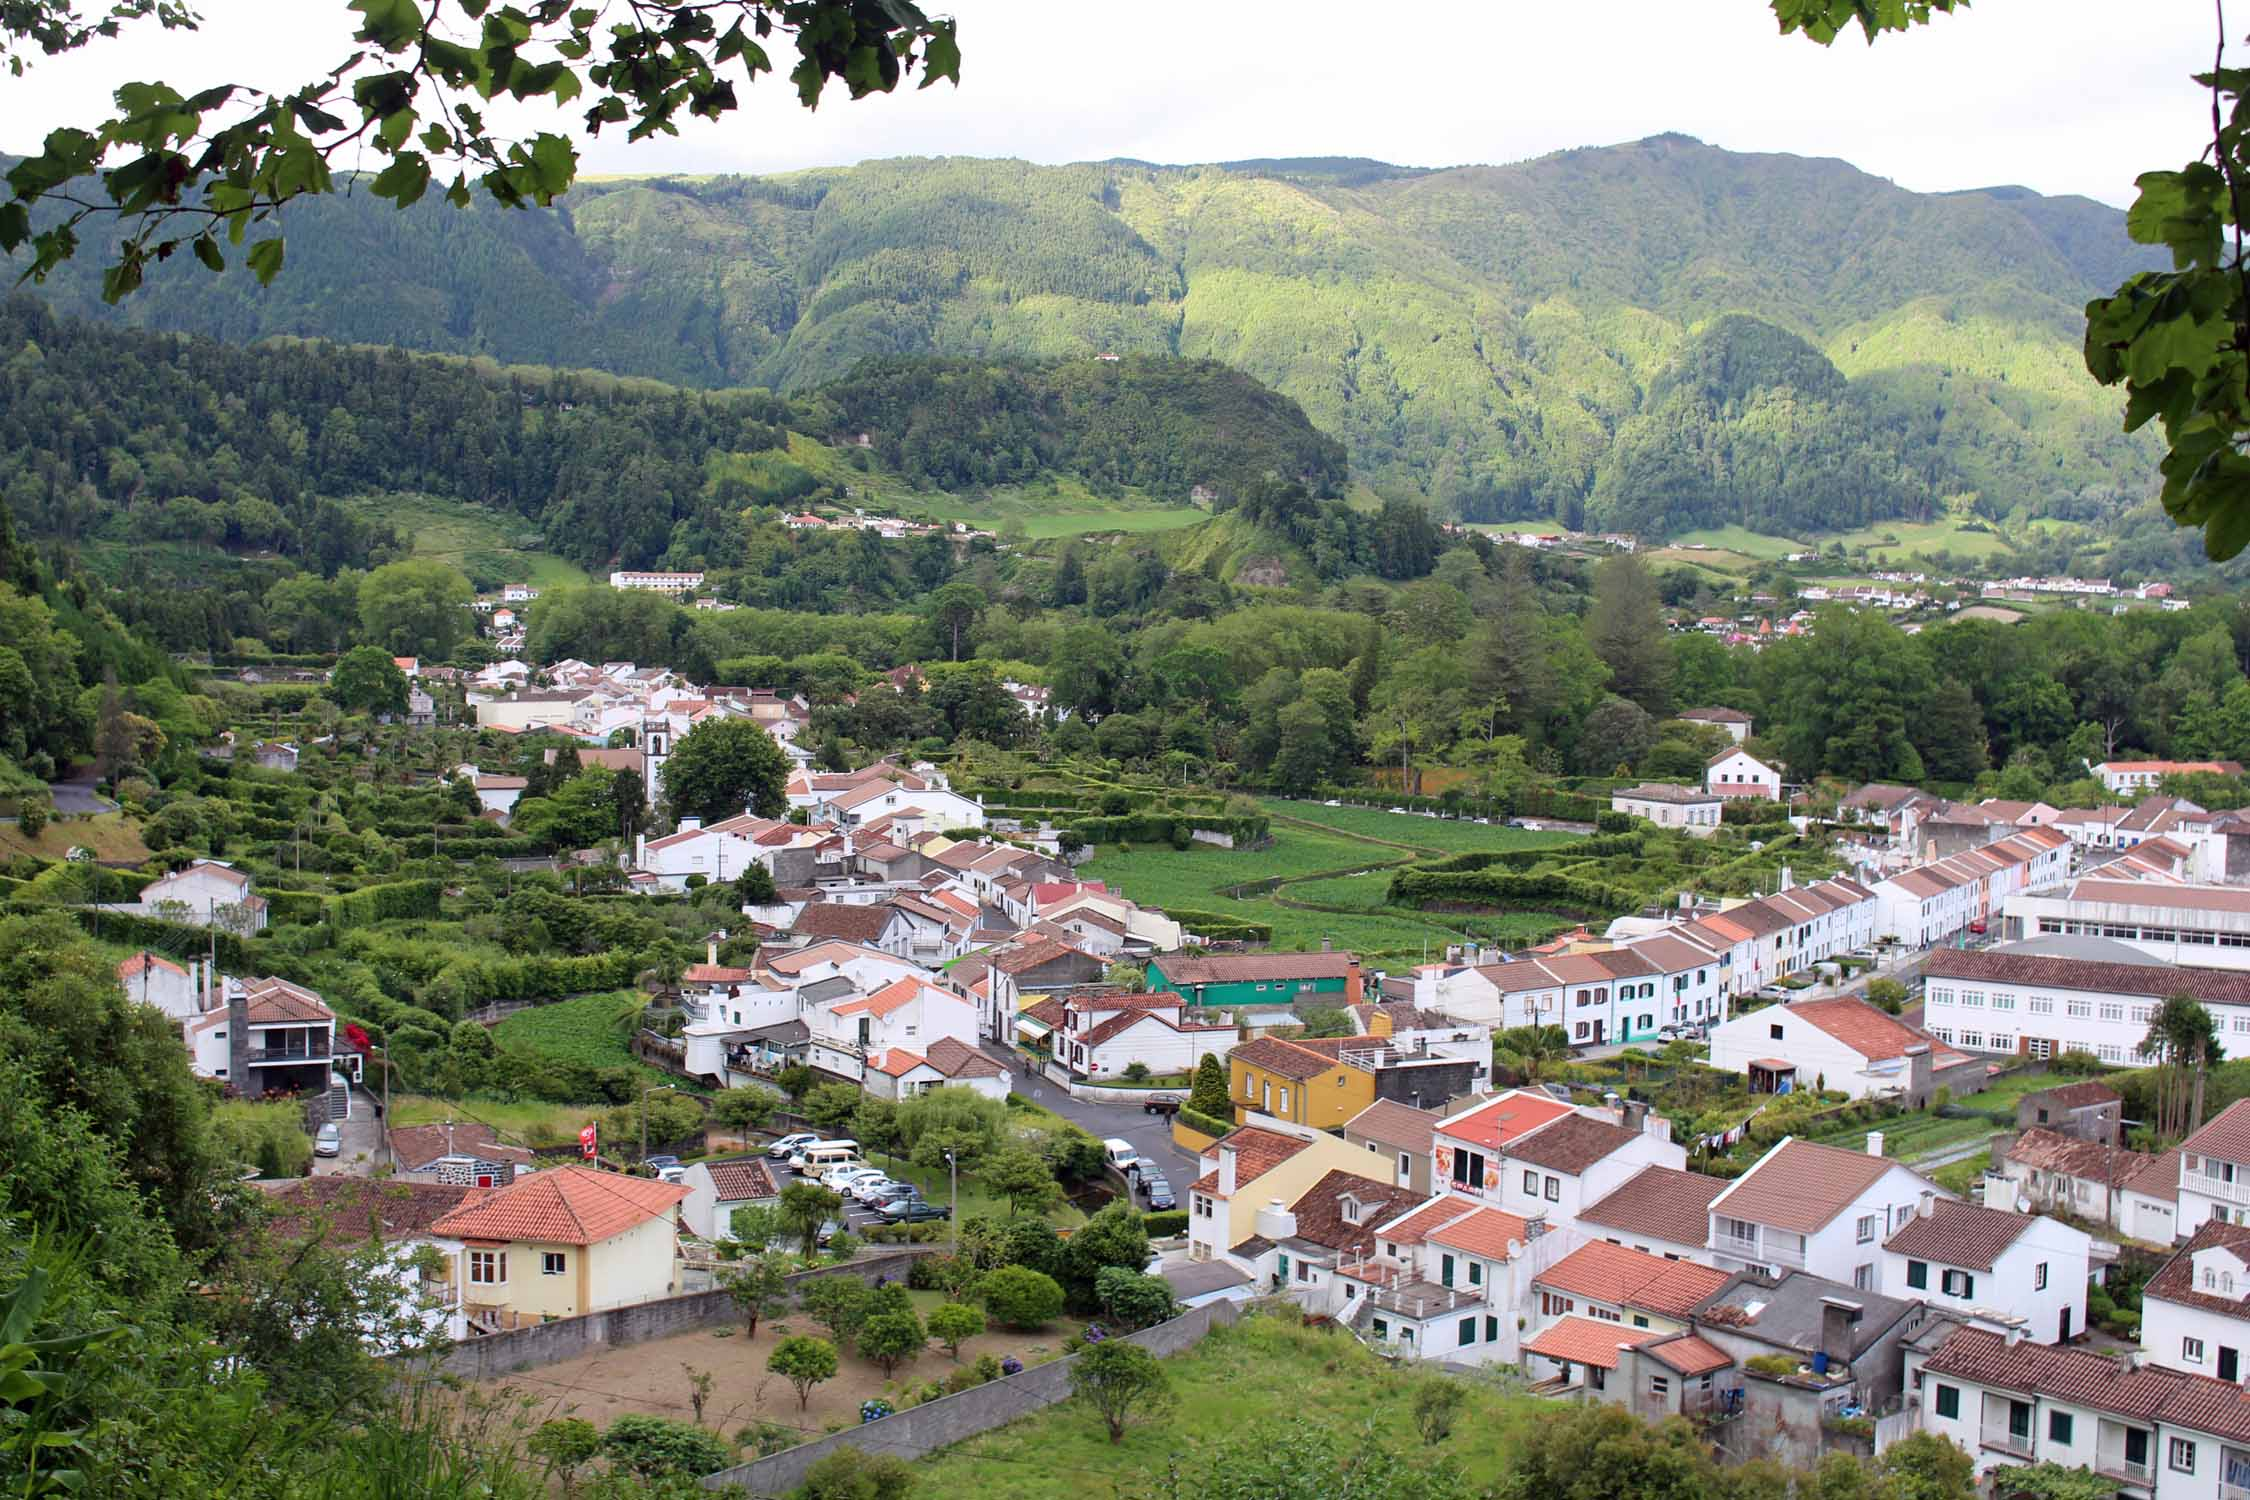 A beautiful landscape in Furnas, São Miguel island, Azores